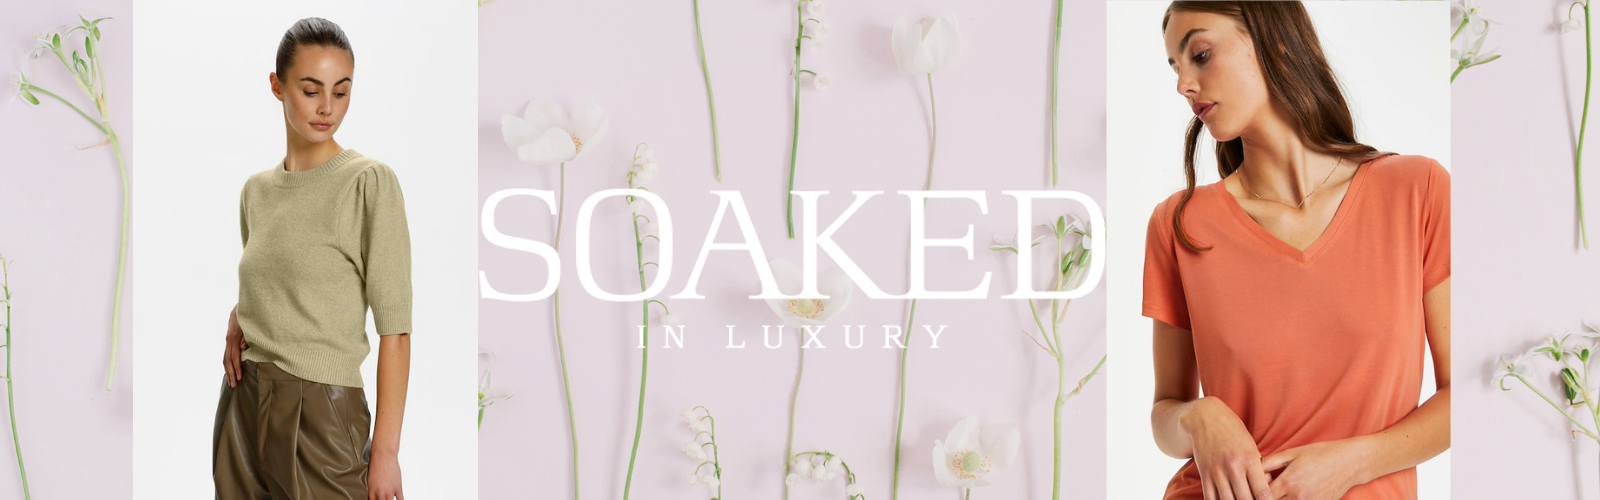 Duga Os soaked in luxury